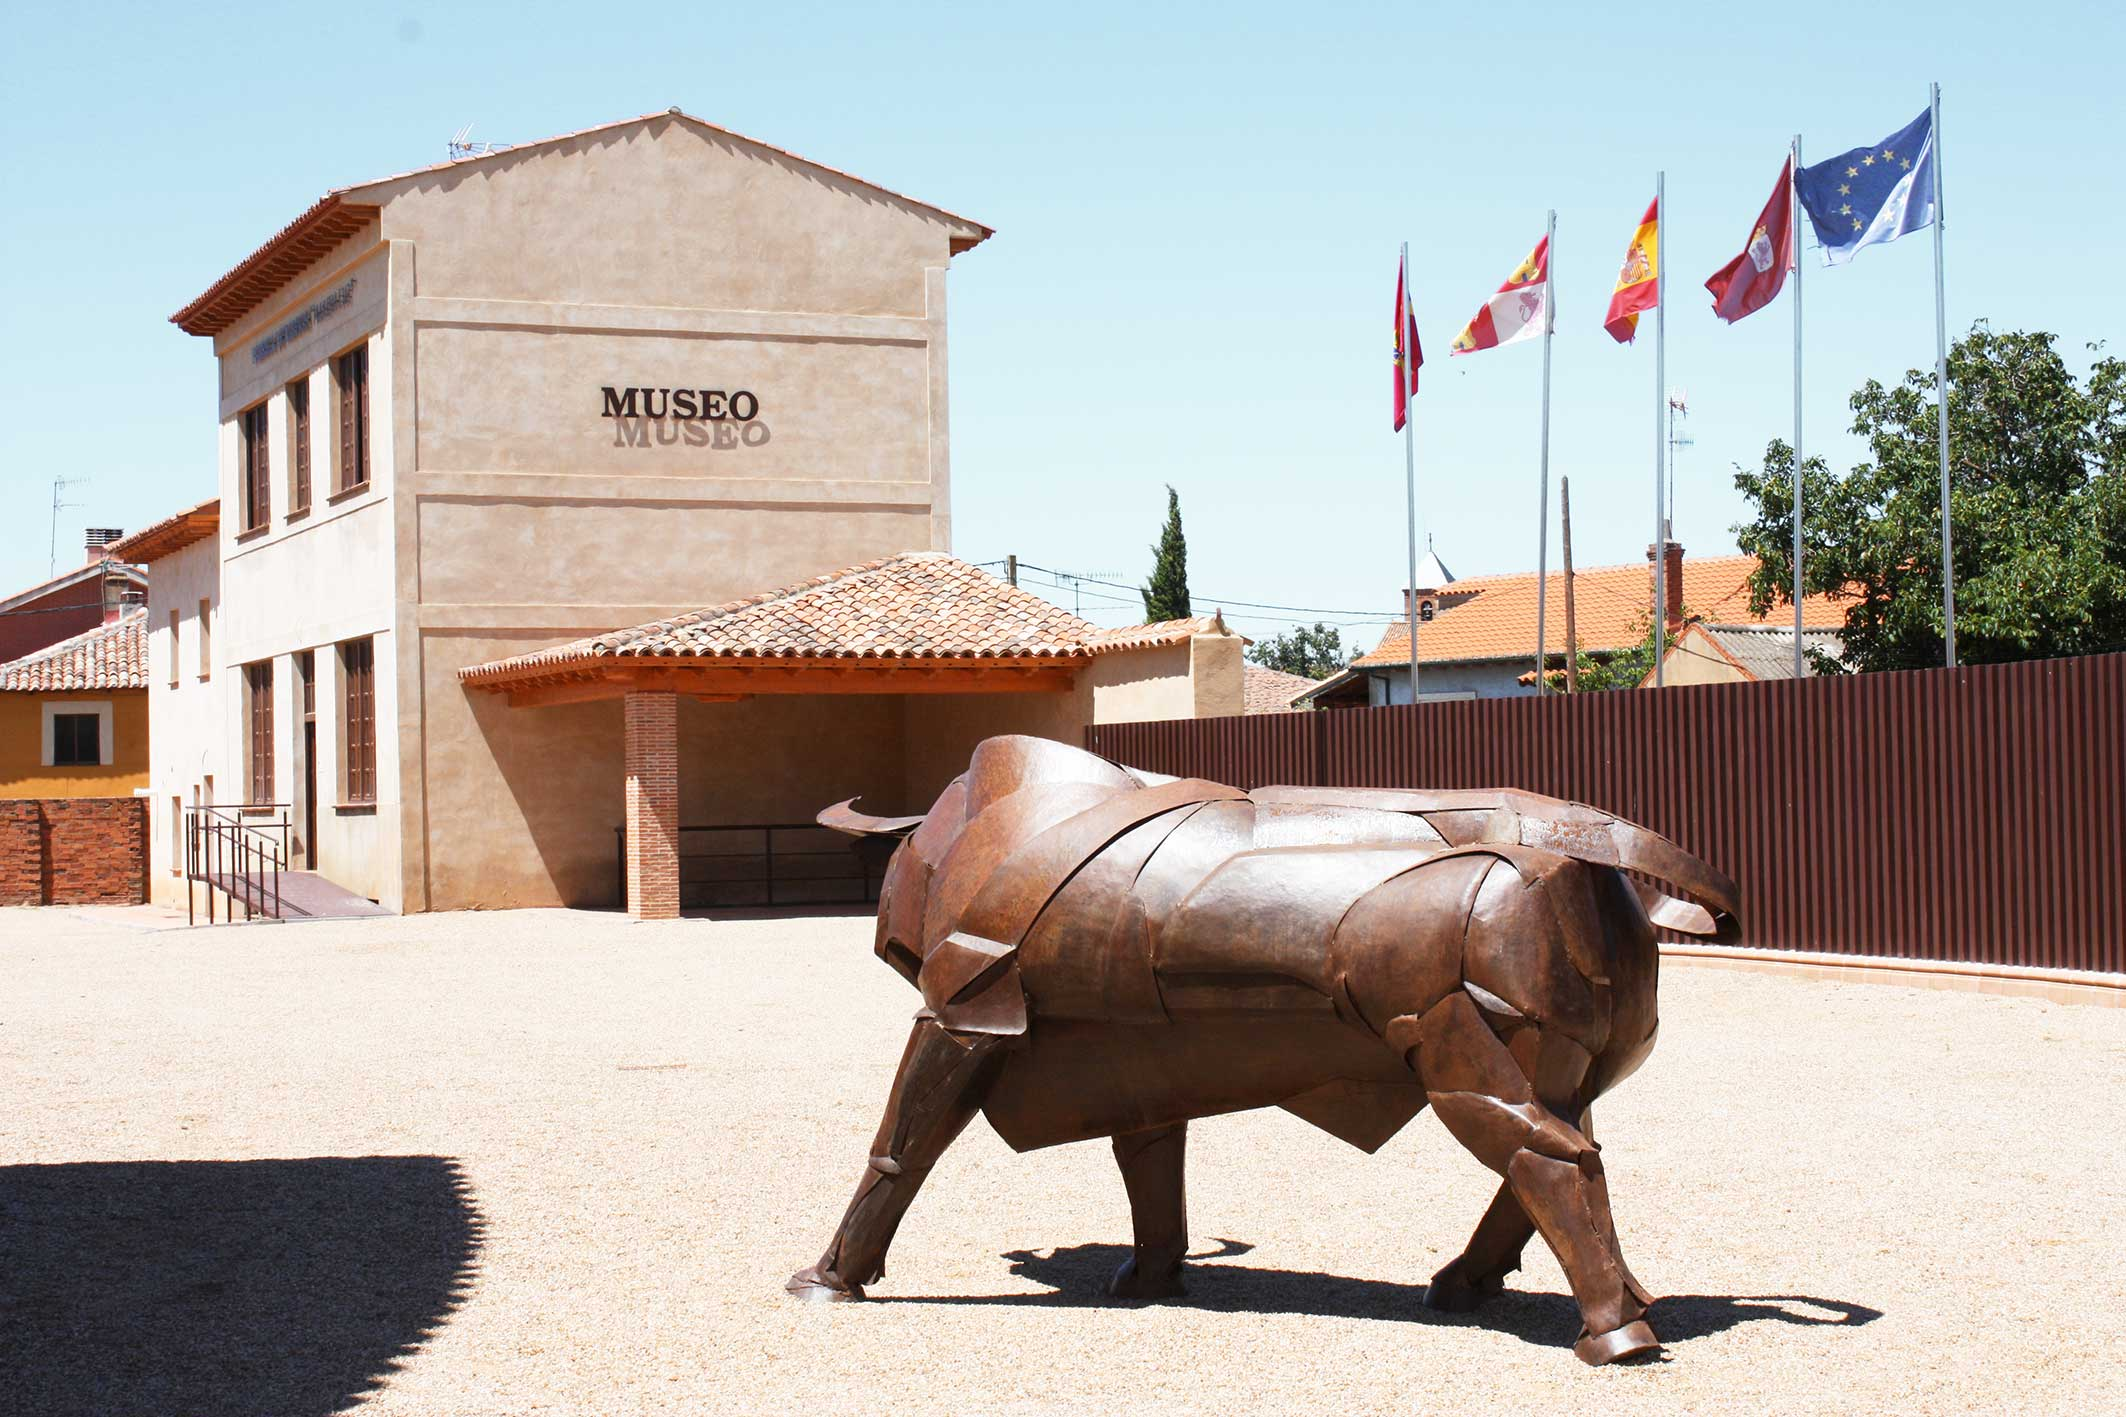 MUSEO MIHACALE